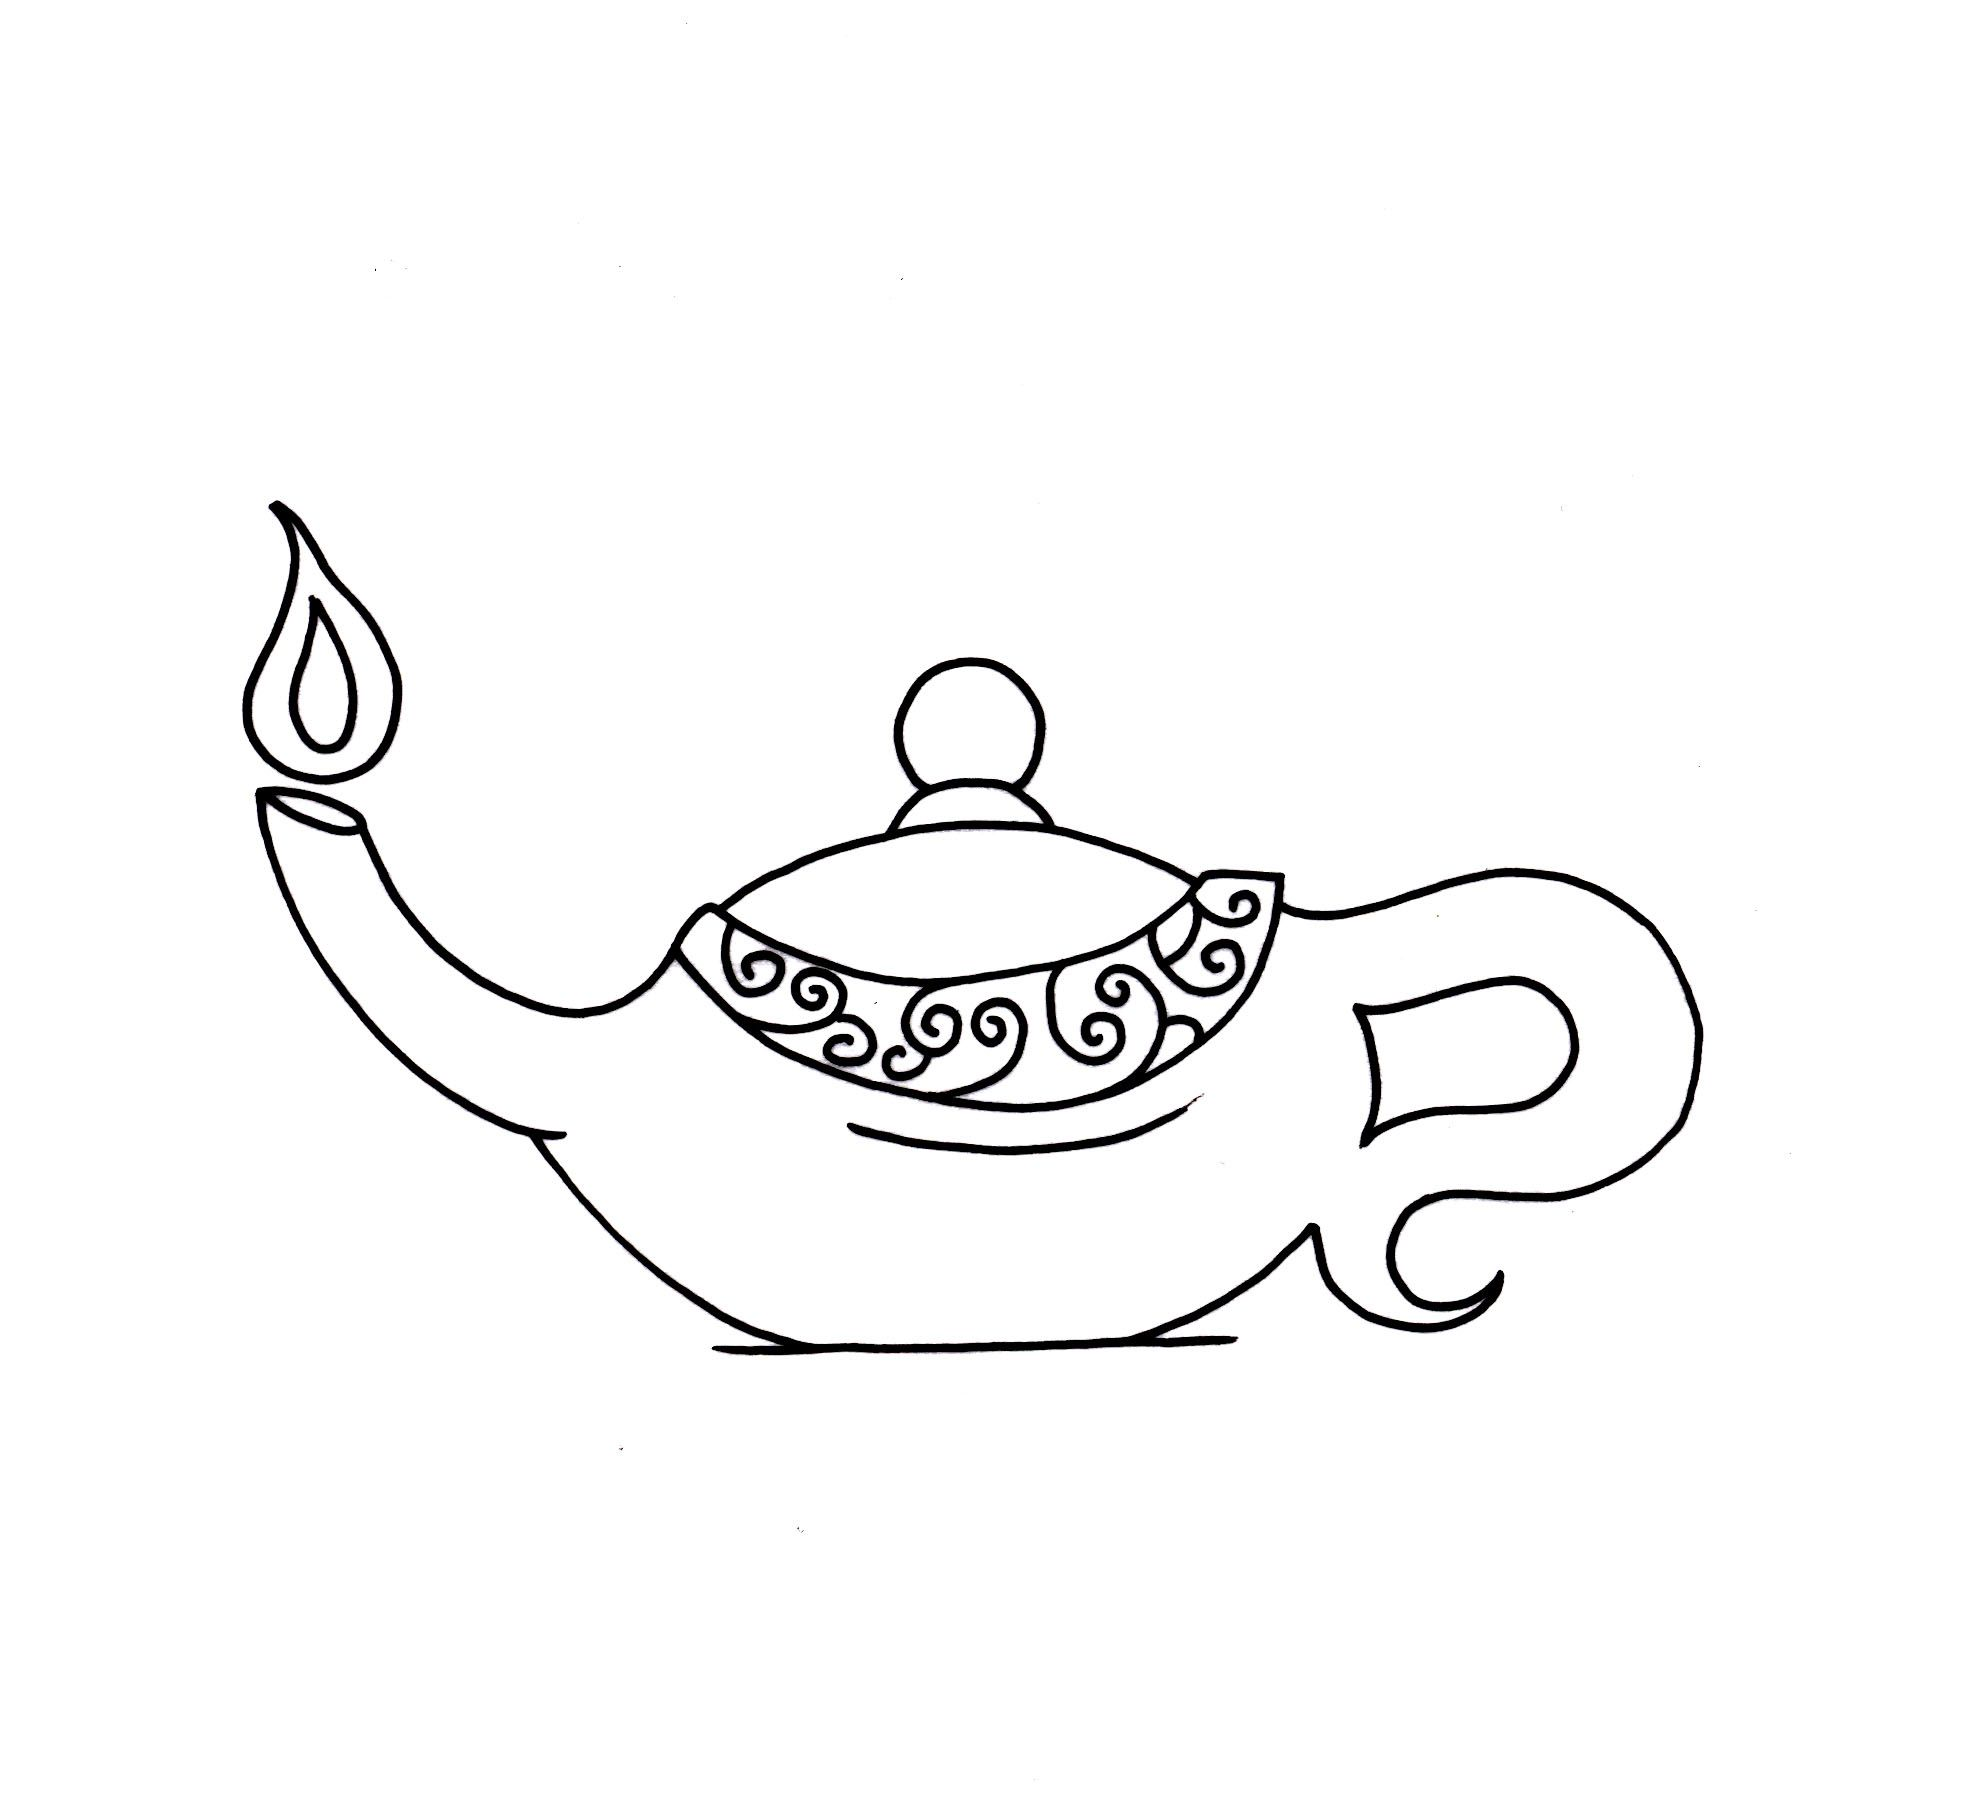 Oil Lamp Coloring Page Oil Lamps Coloring Pages Color